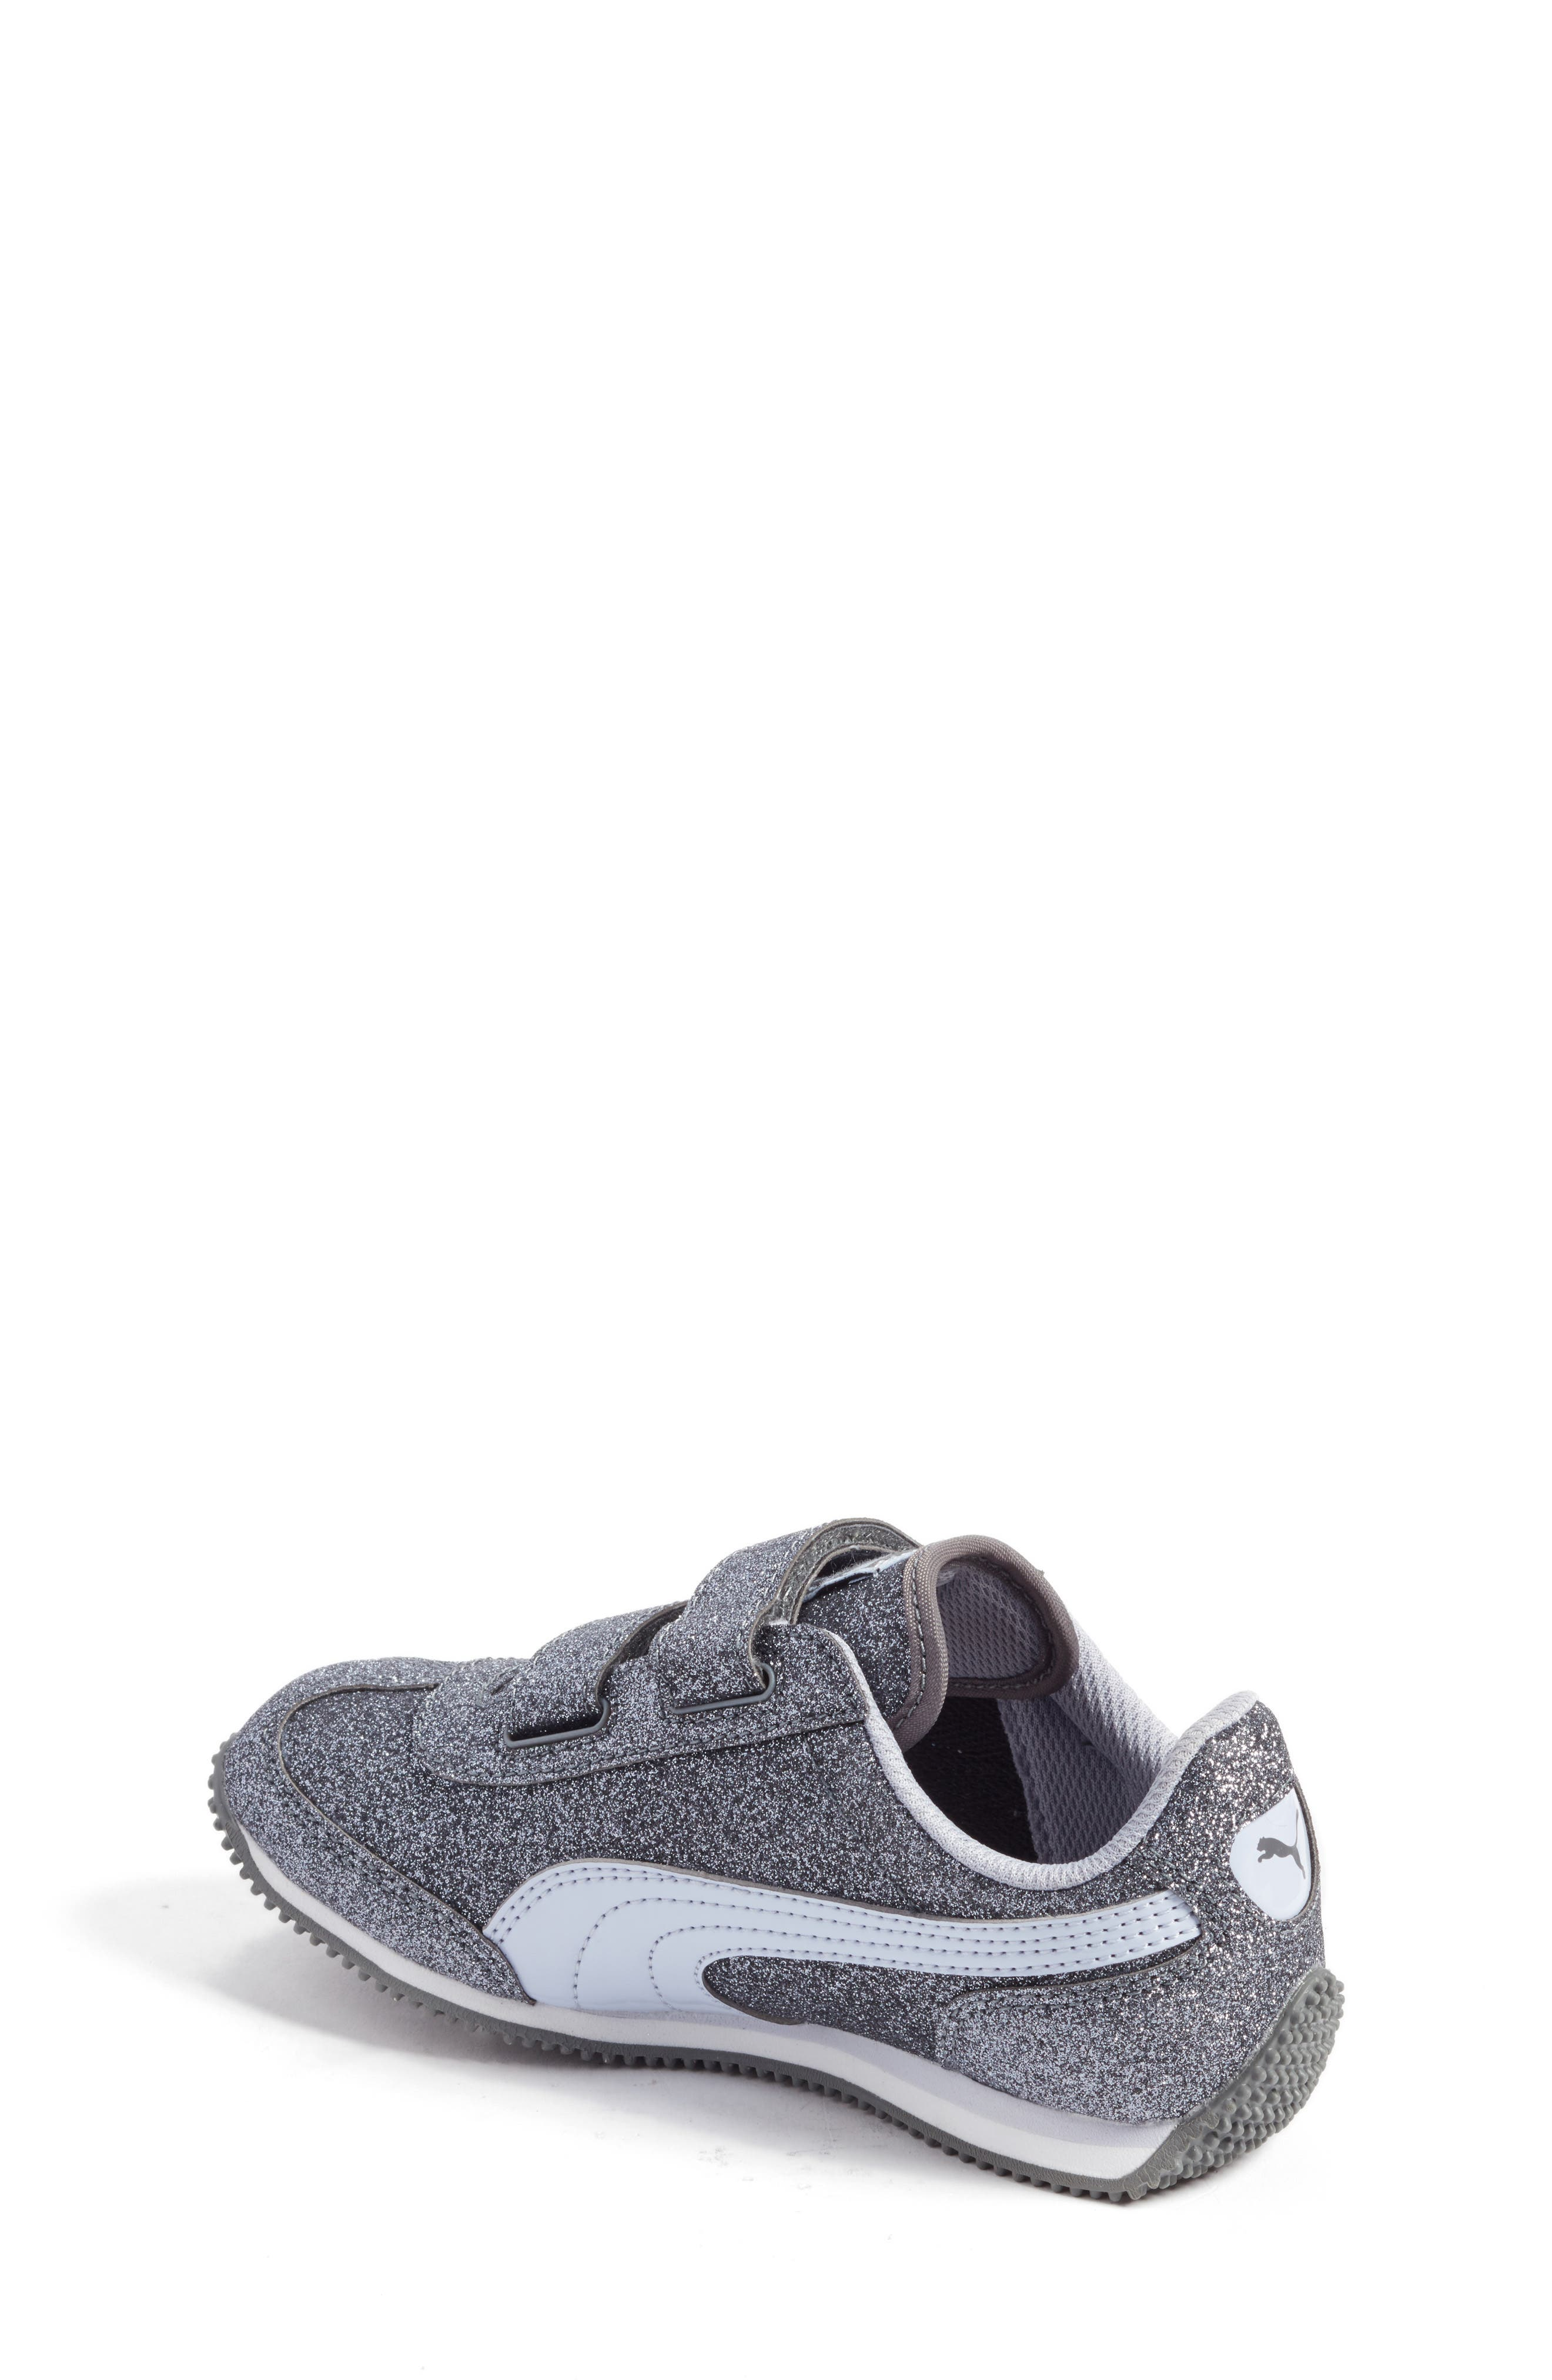 Alternate Image 2  - PUMA Whirlwind Glitz Sneaker (Toddler, Little Kid & Big Kid)